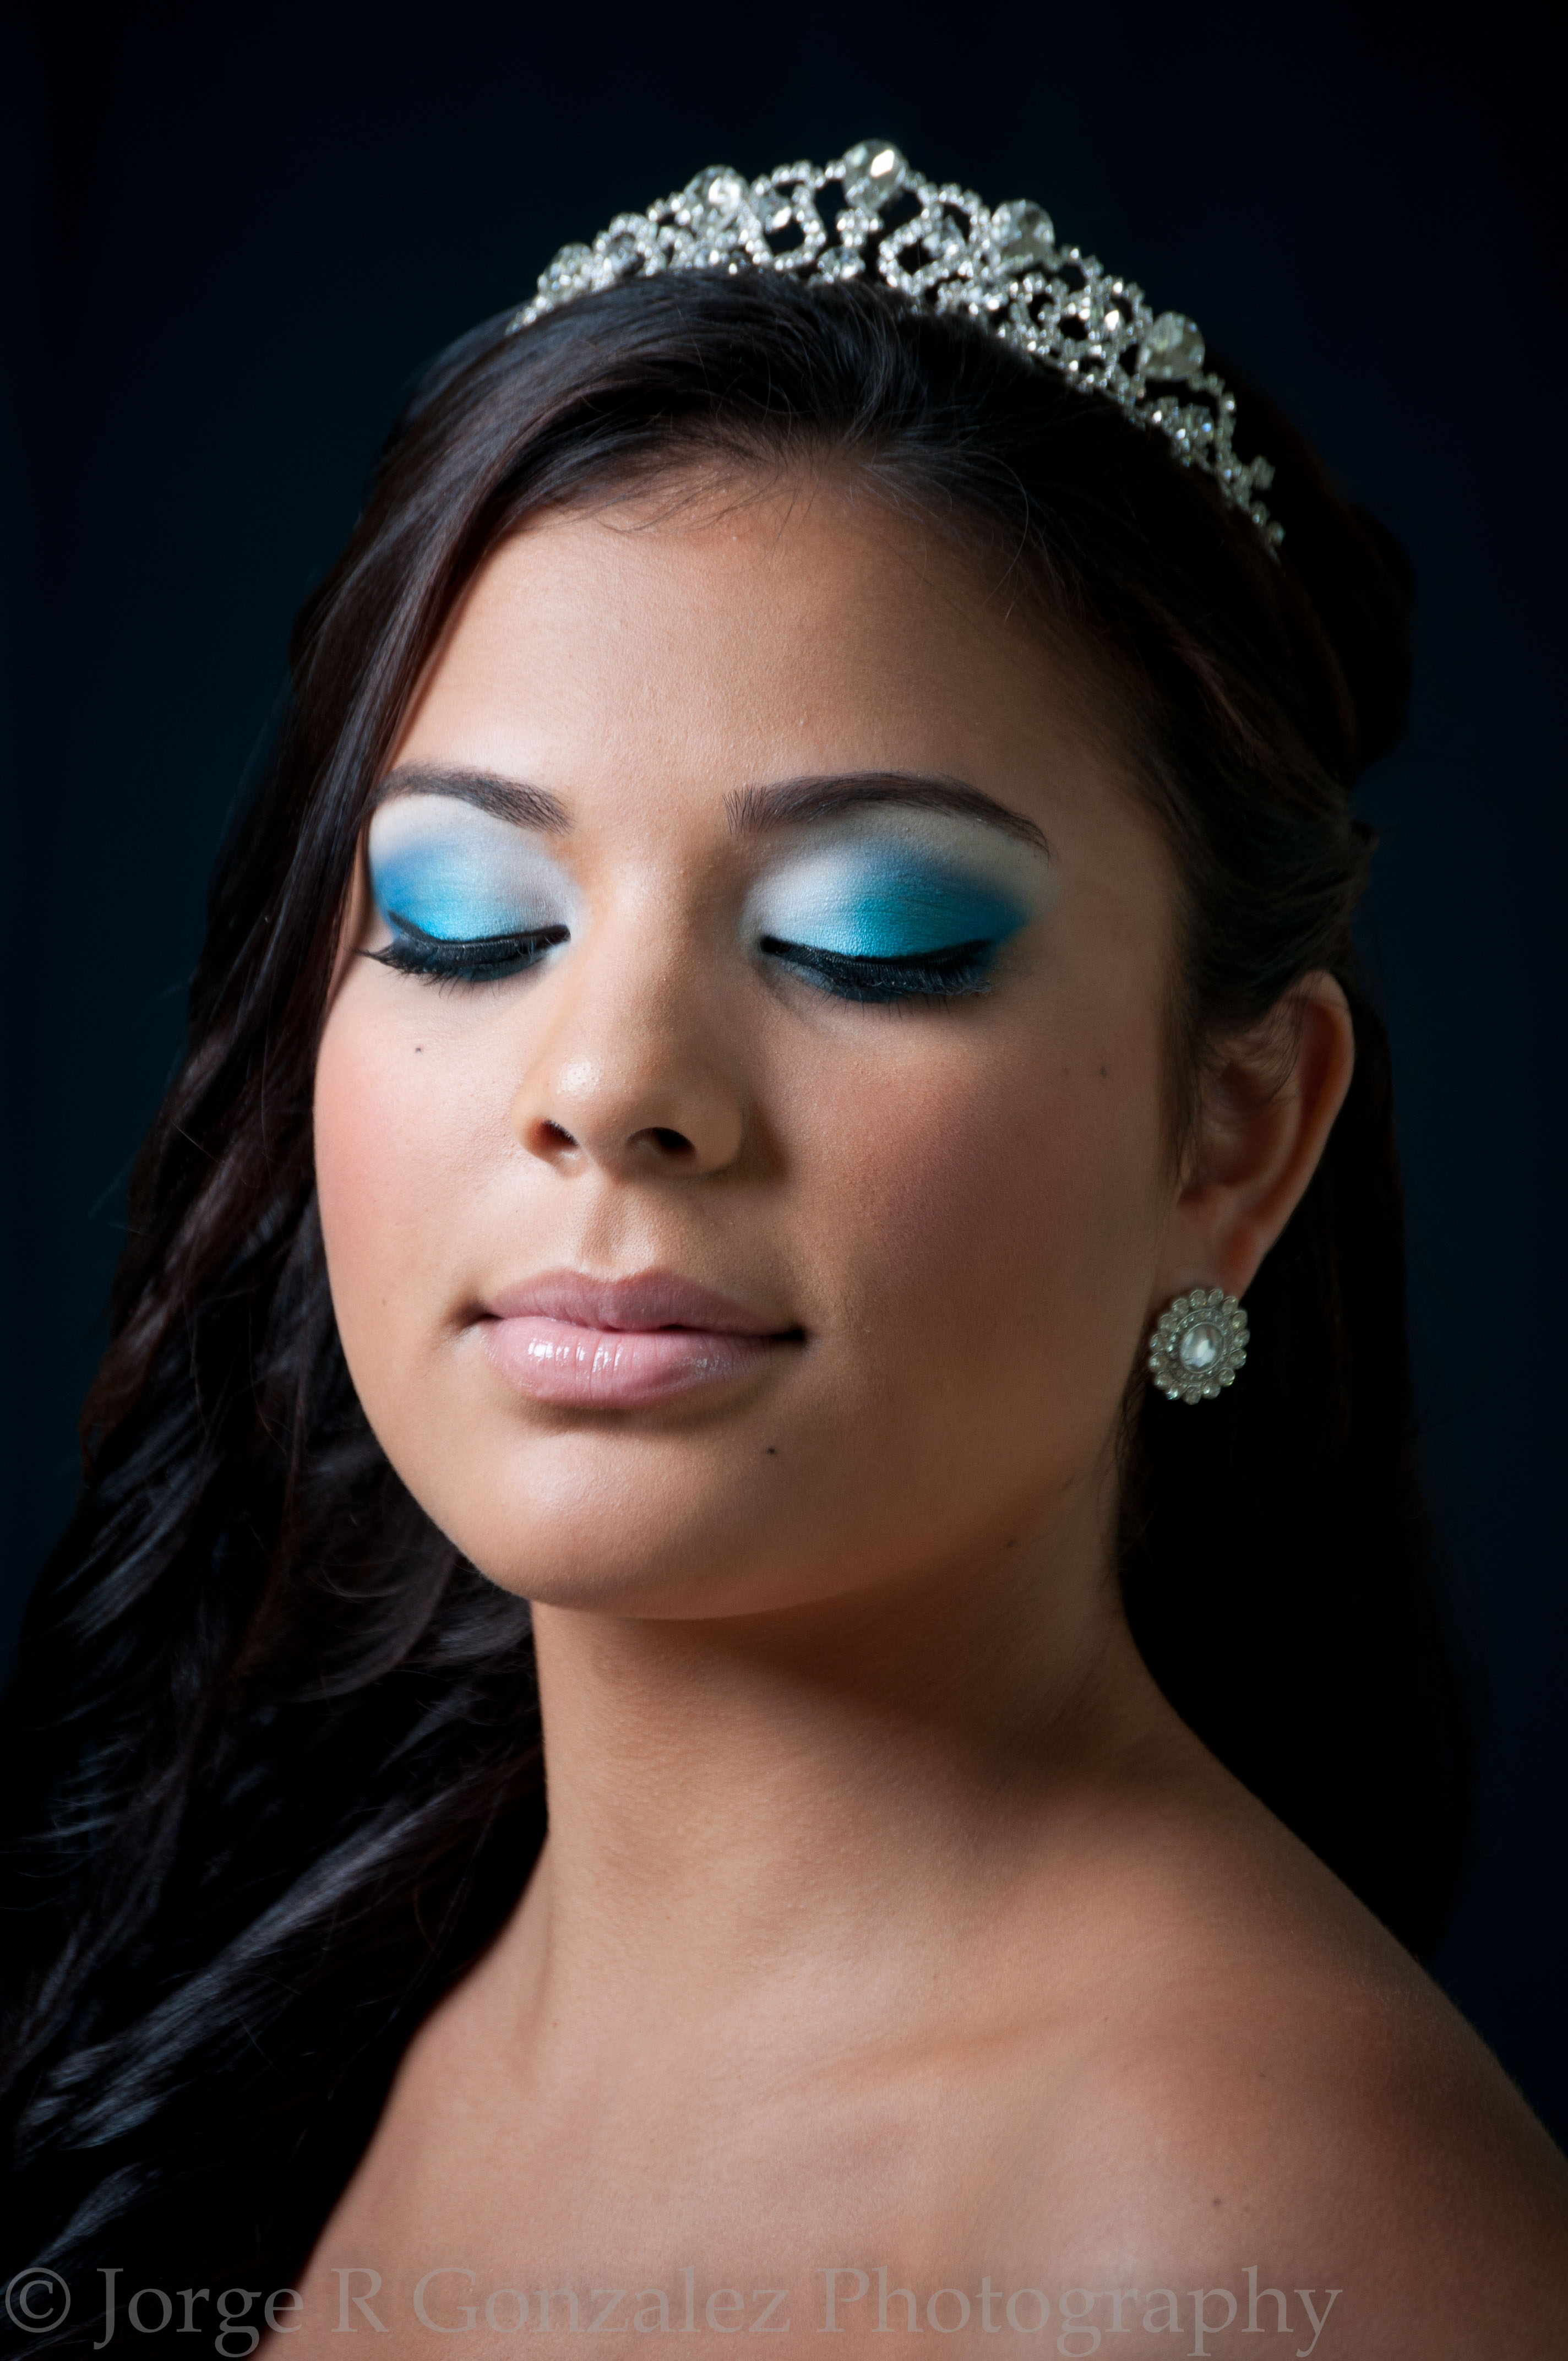 Collaboration Photo Shoot With Hair And Make Up By